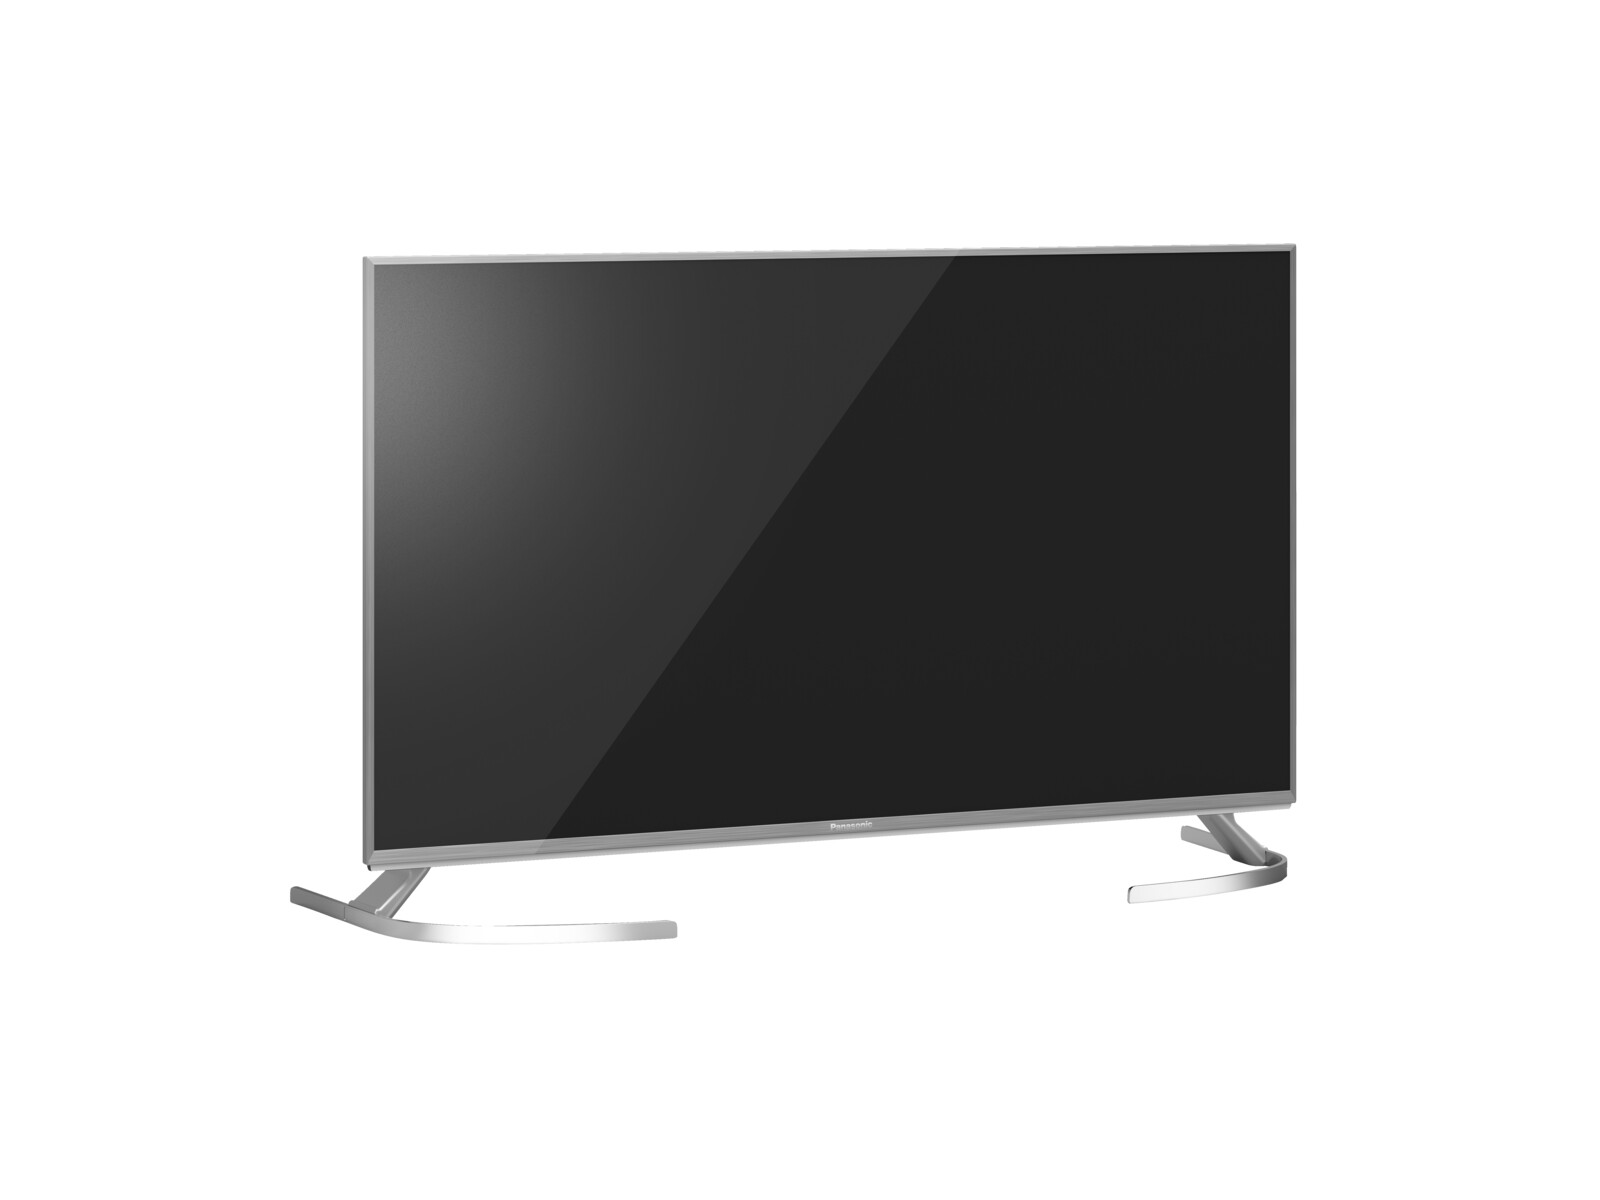 panasonic tx 65exw734 led tv flat 65 zoll uhd 4k smart. Black Bedroom Furniture Sets. Home Design Ideas